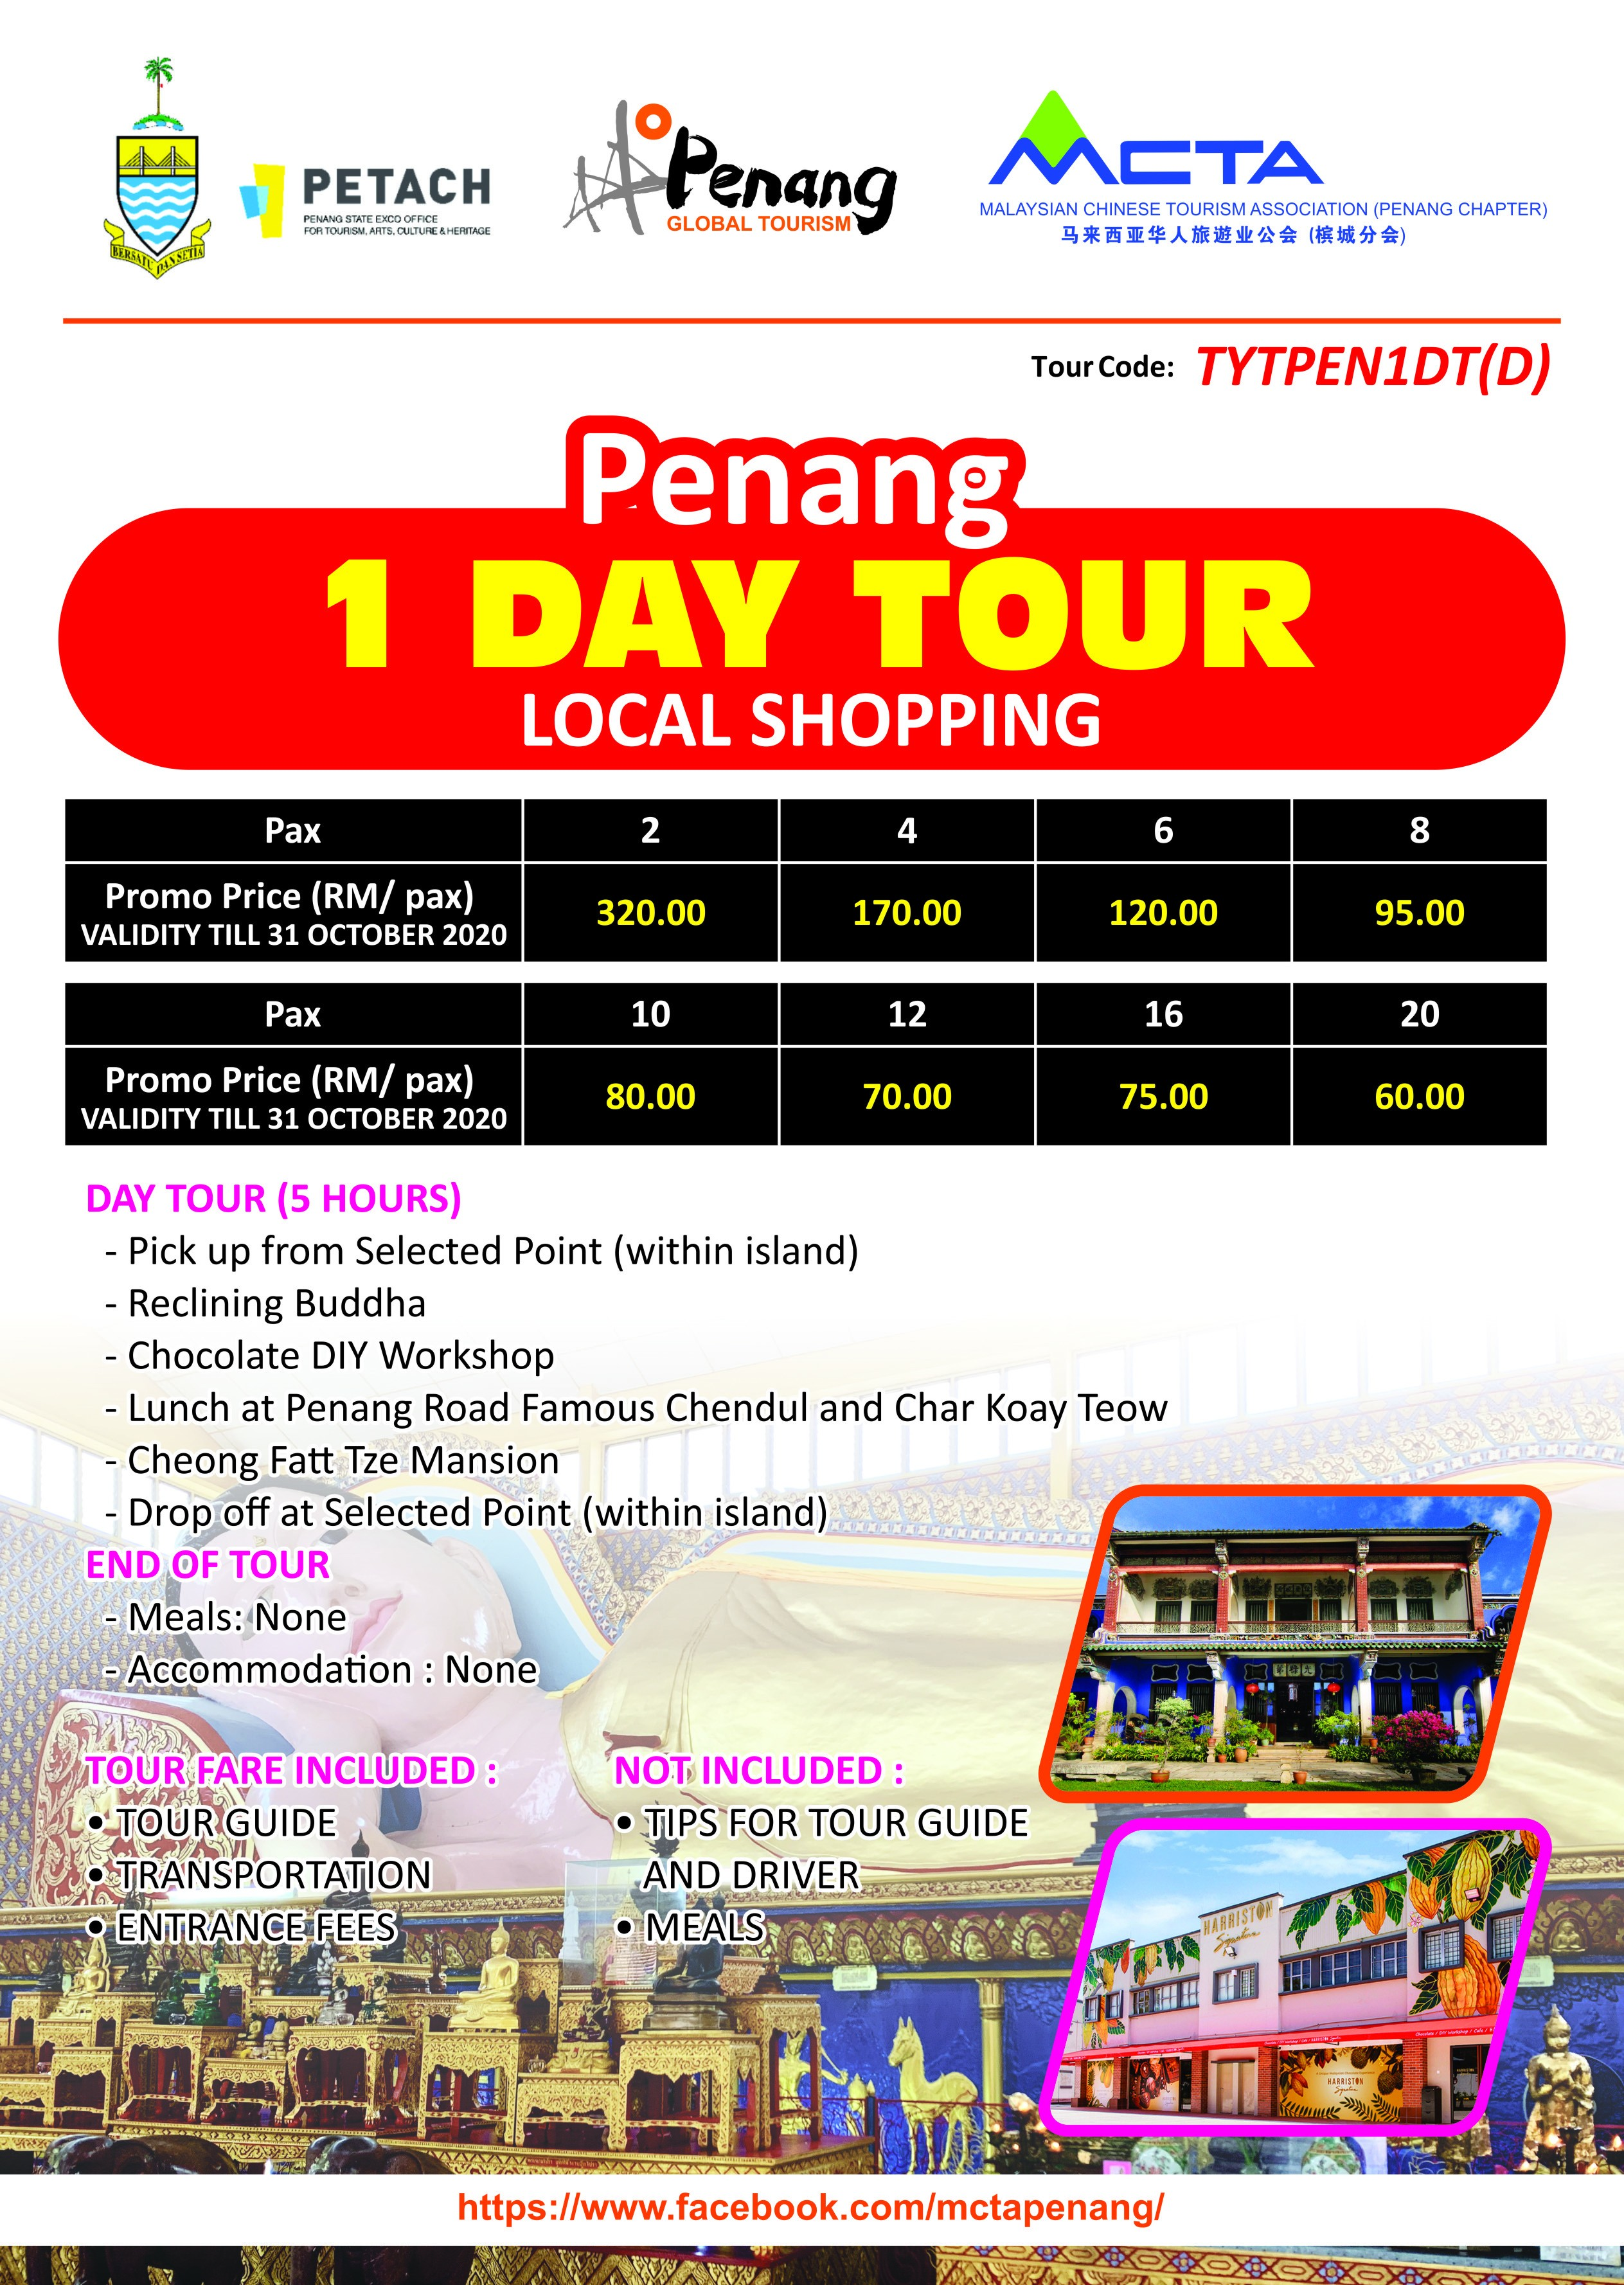 Penang 1 Day Tour - Local Shopping